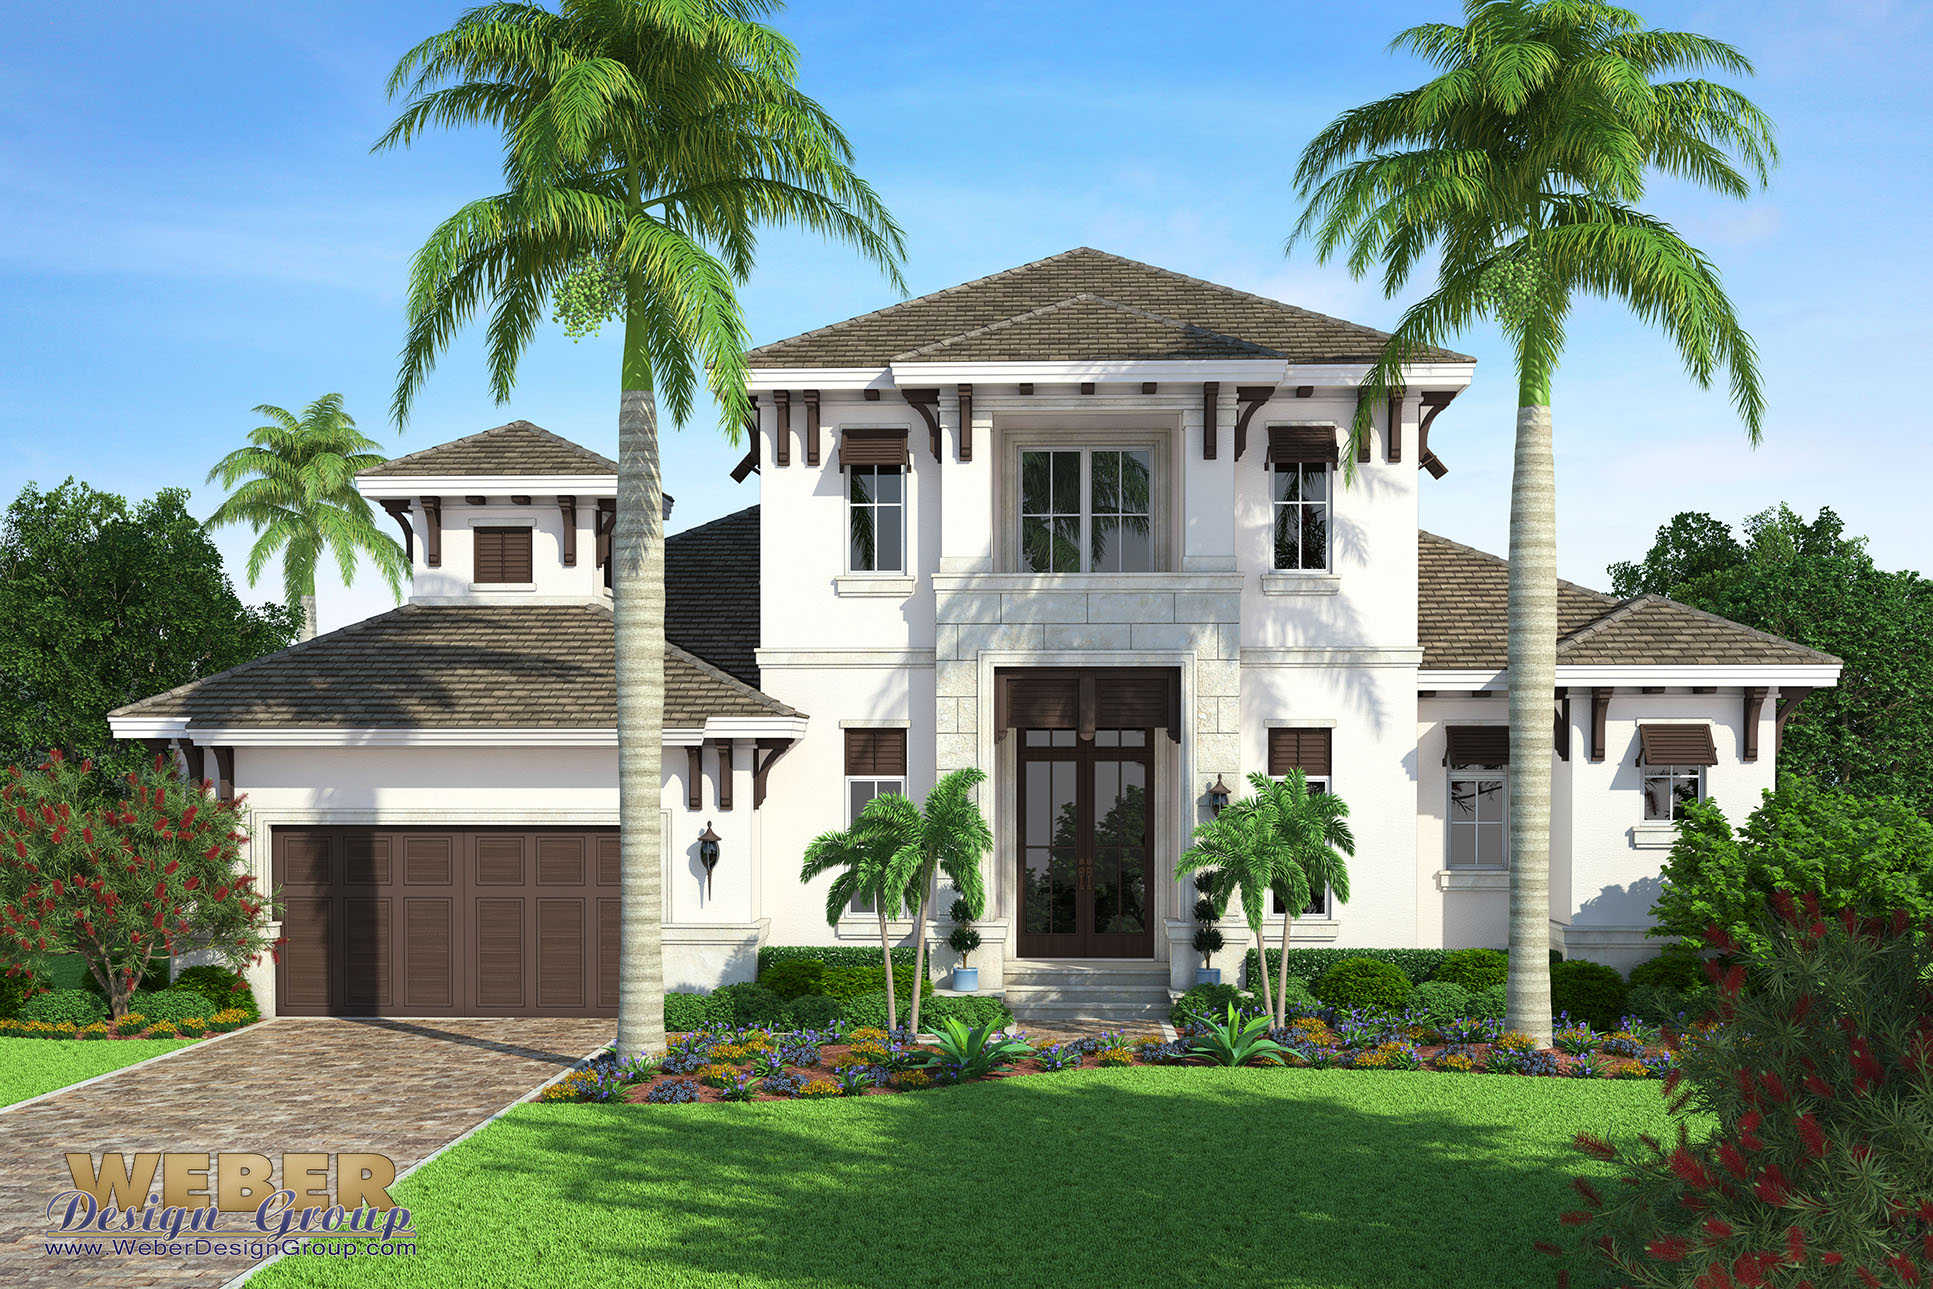 West indies home plan edgewater model weber design group Jamaican house designs